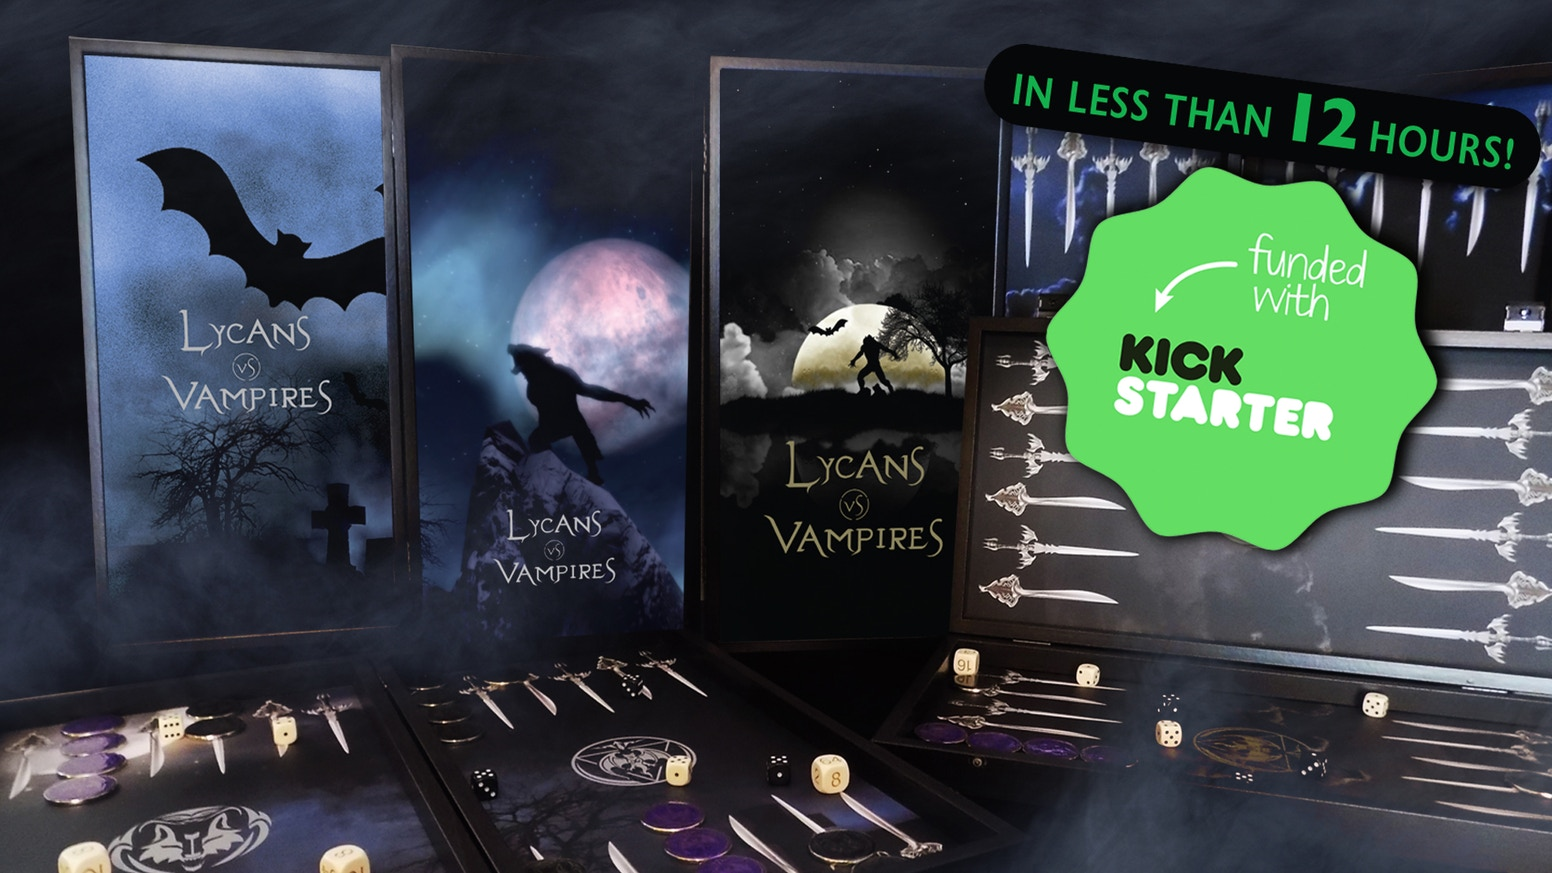 For all fantasy enthusiasts, collectors and gamers we proudly present, our Full Fantasy Backgammon Collection - Lycans vs Vampires.